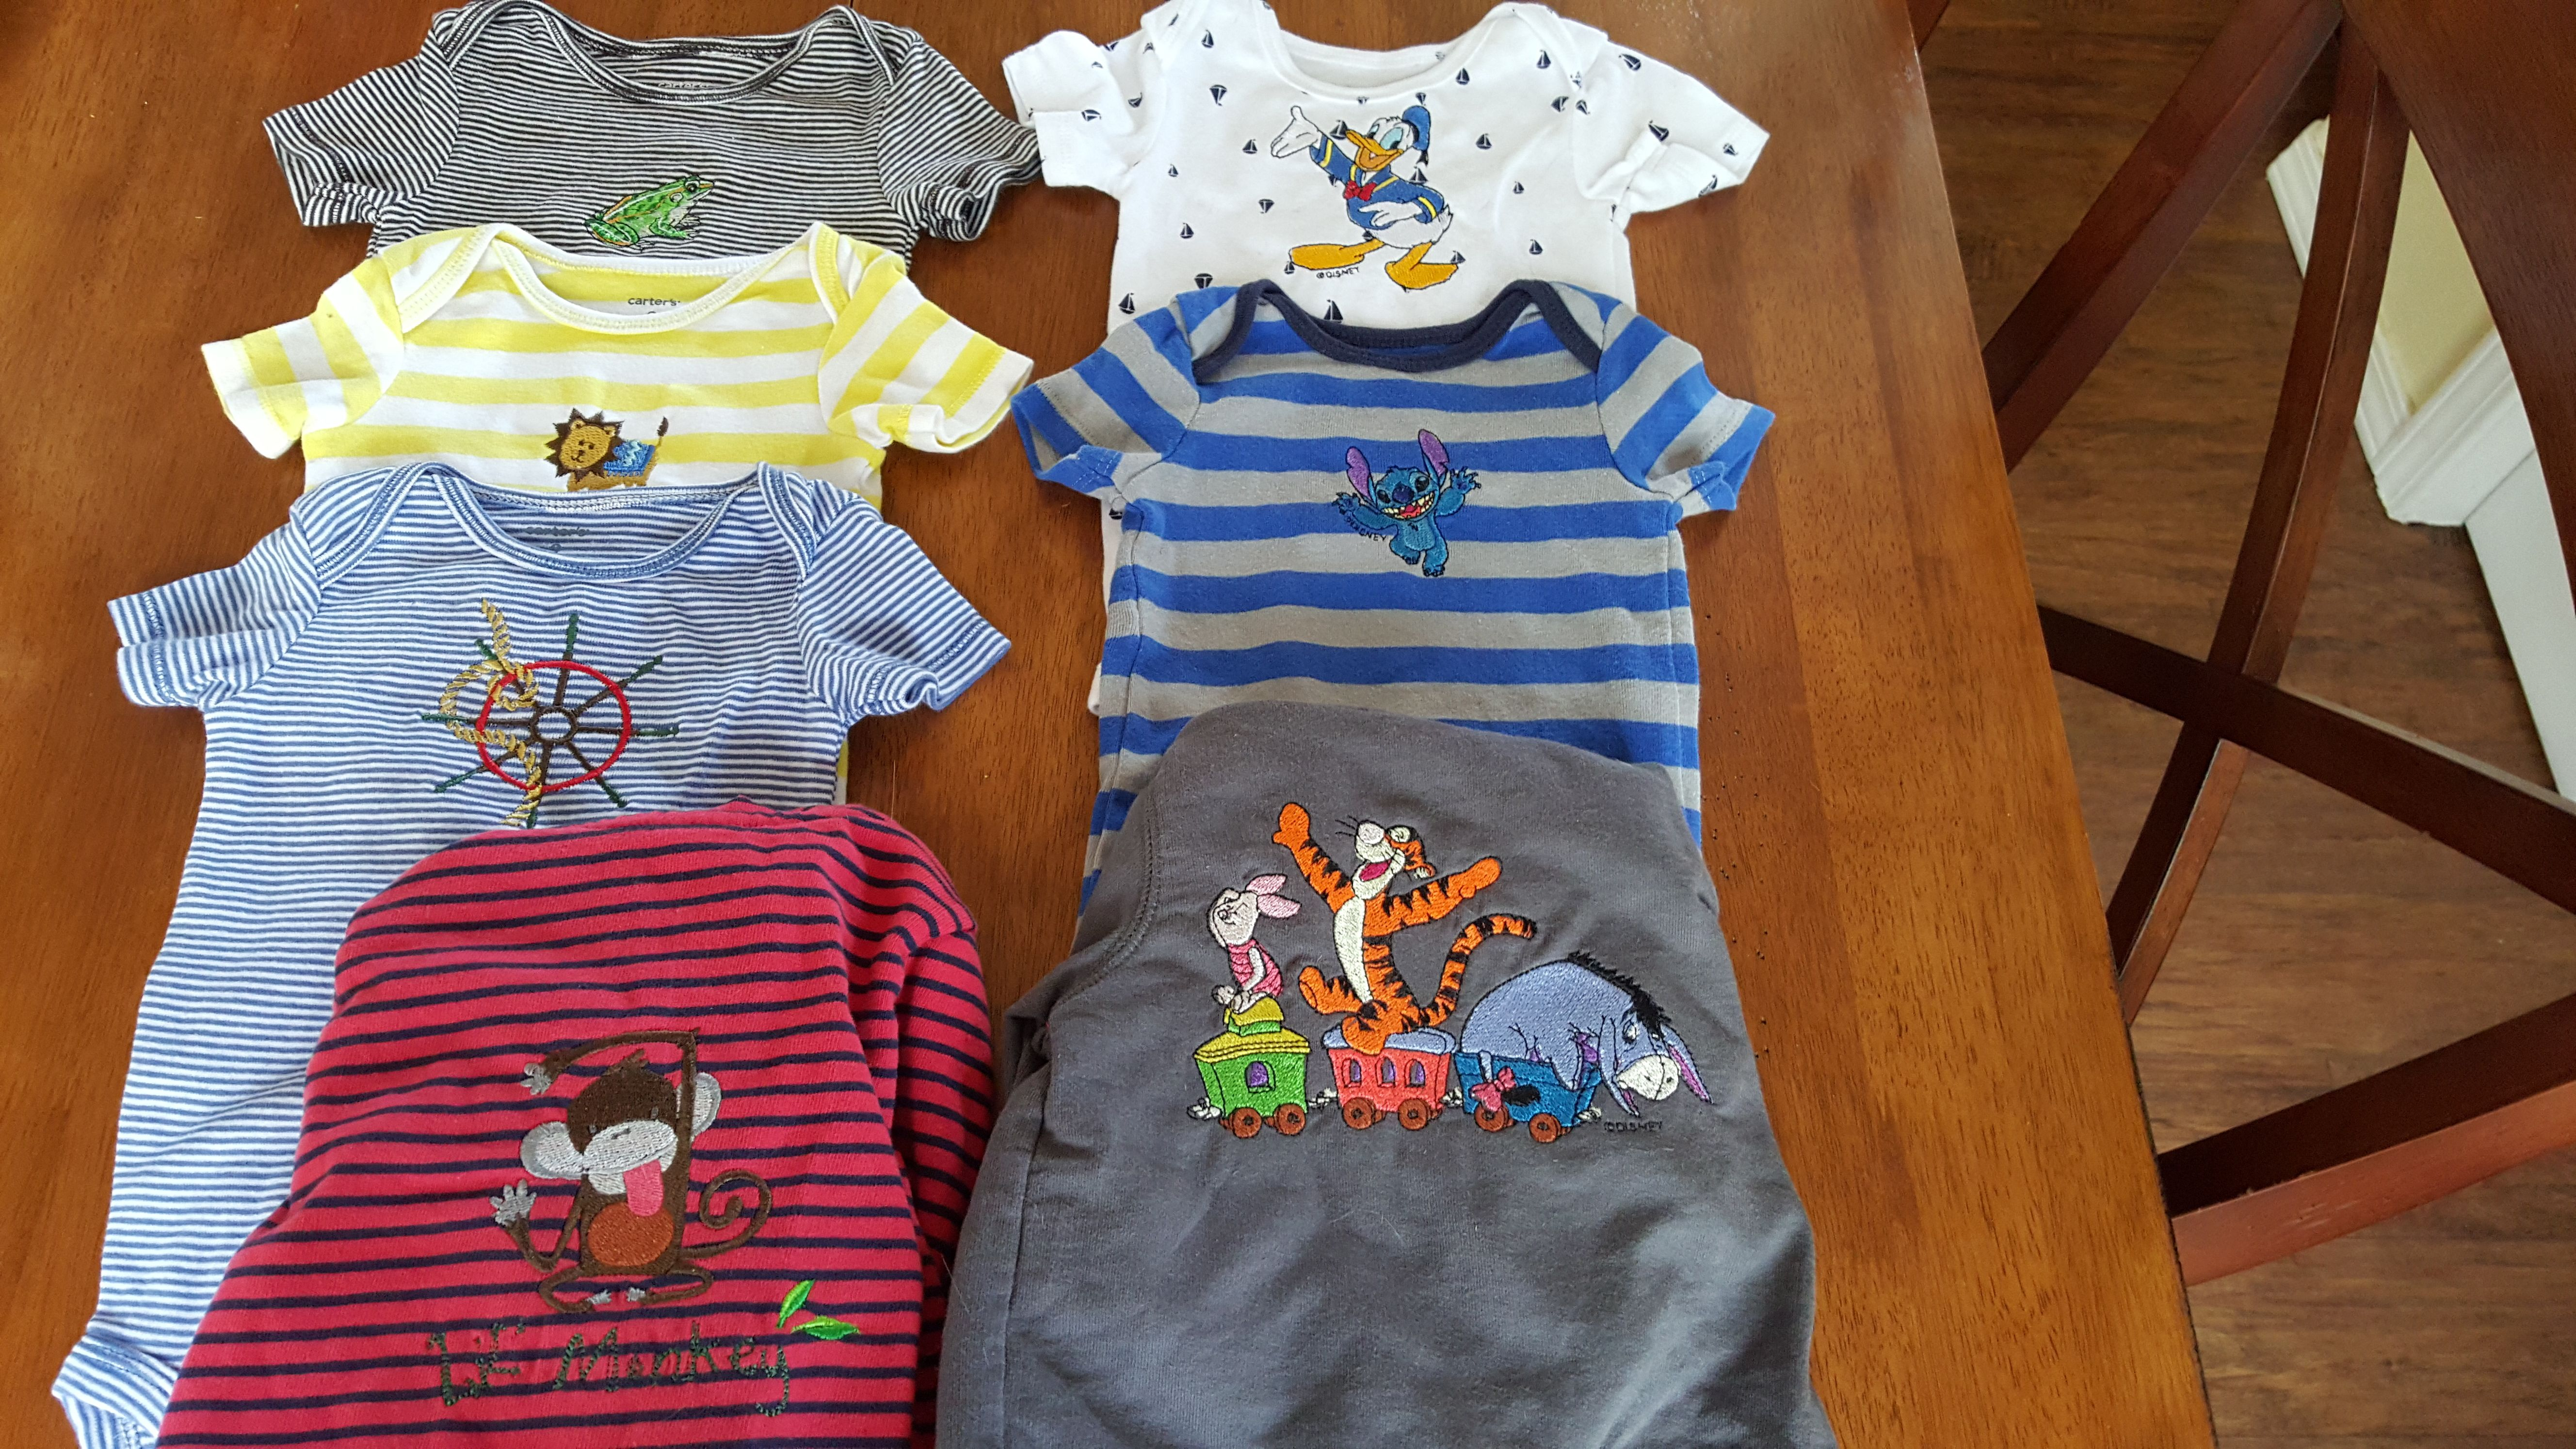 Thayne's onesies from his uncle B and Andy.